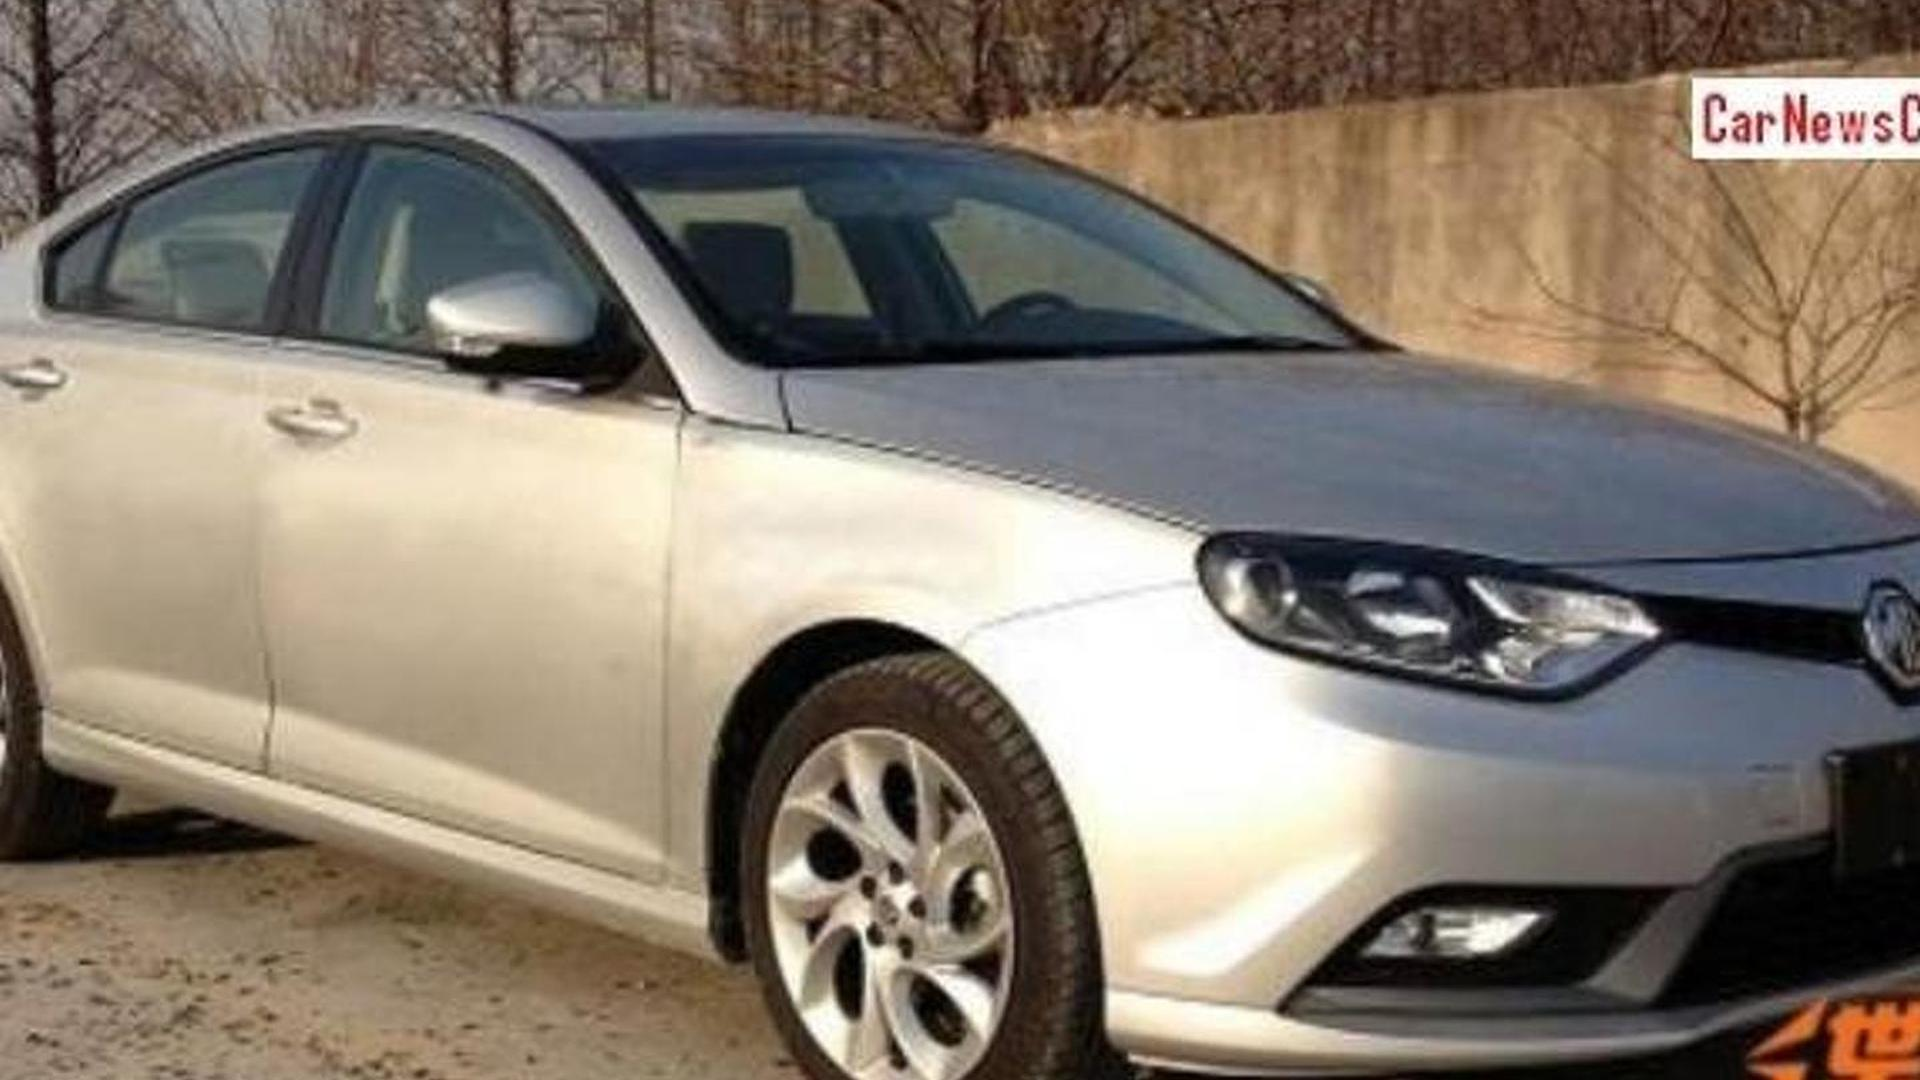 2015 MG6 facelift spied without disguise